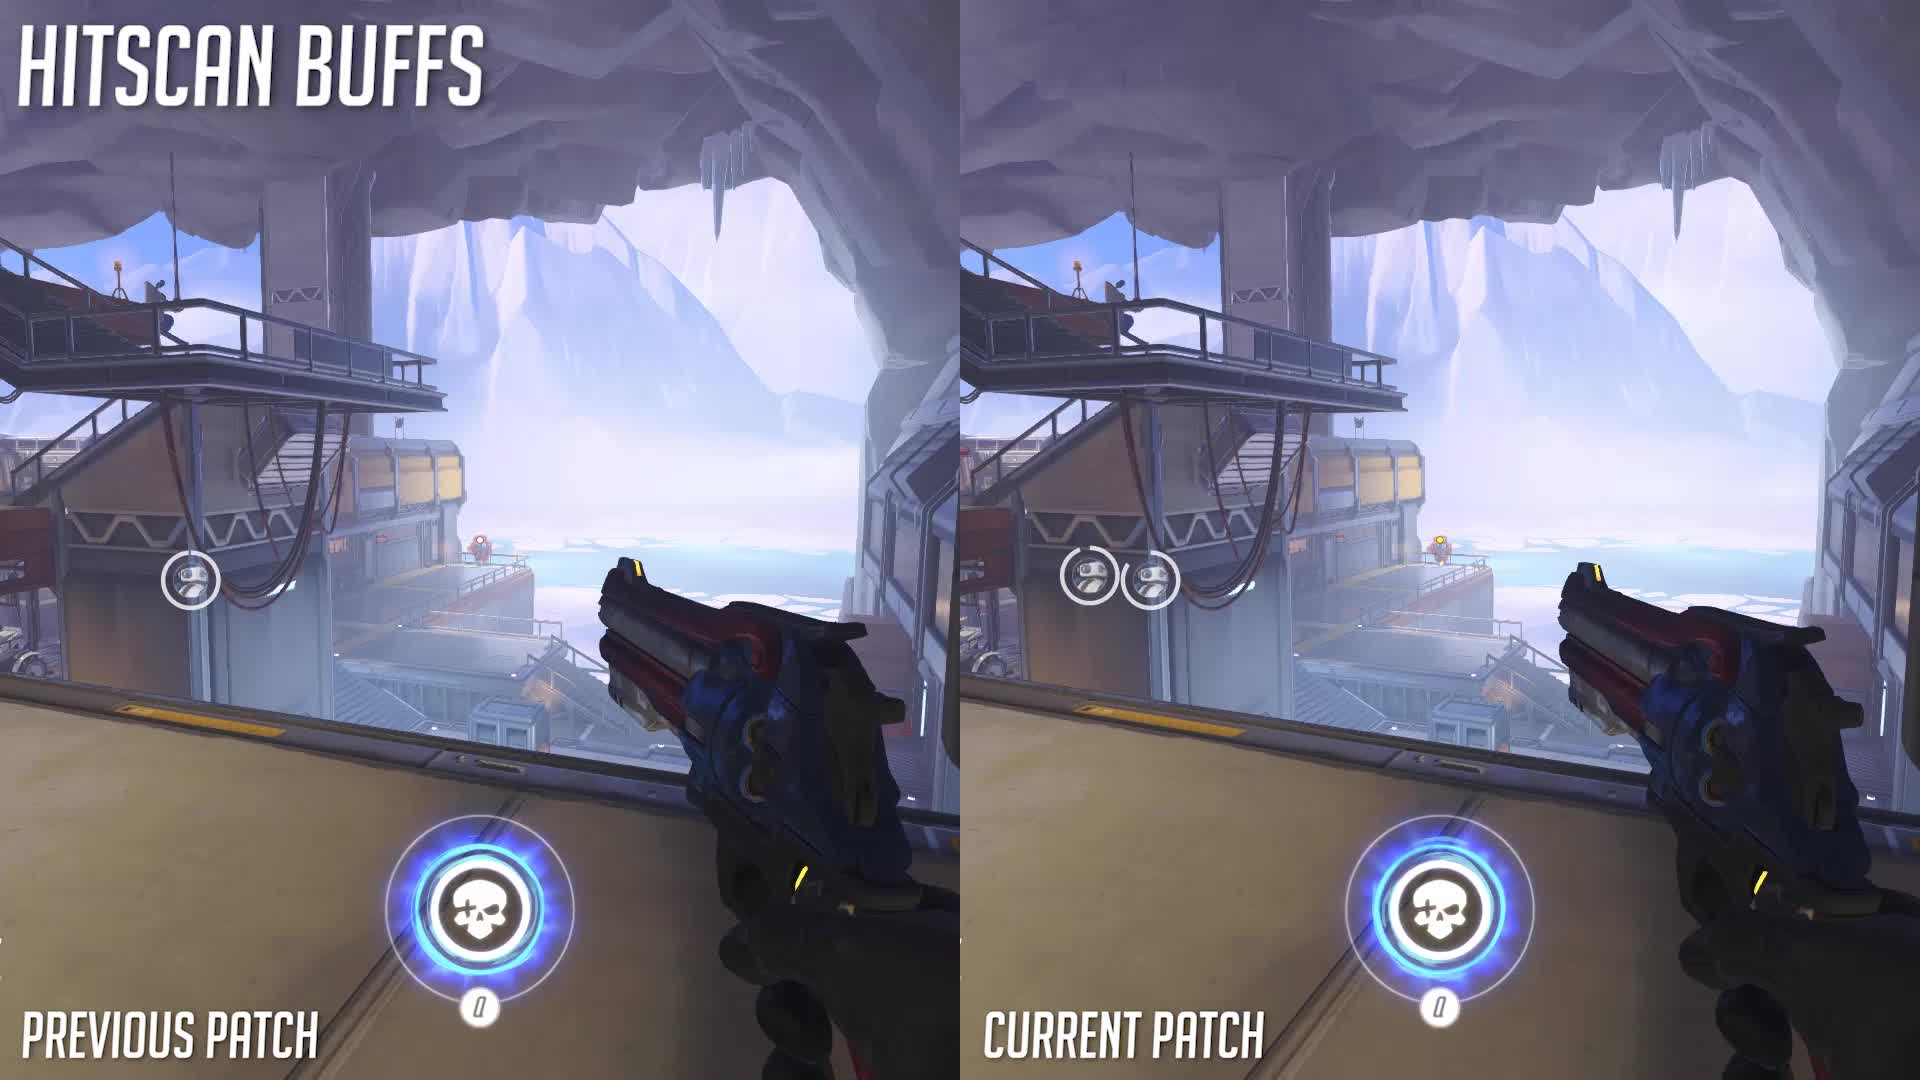 Bastion, Hitscan, McCree, Overwatch, Soldier 76, Overwatch Patch 24th July - Hitscan Buffs GIFs